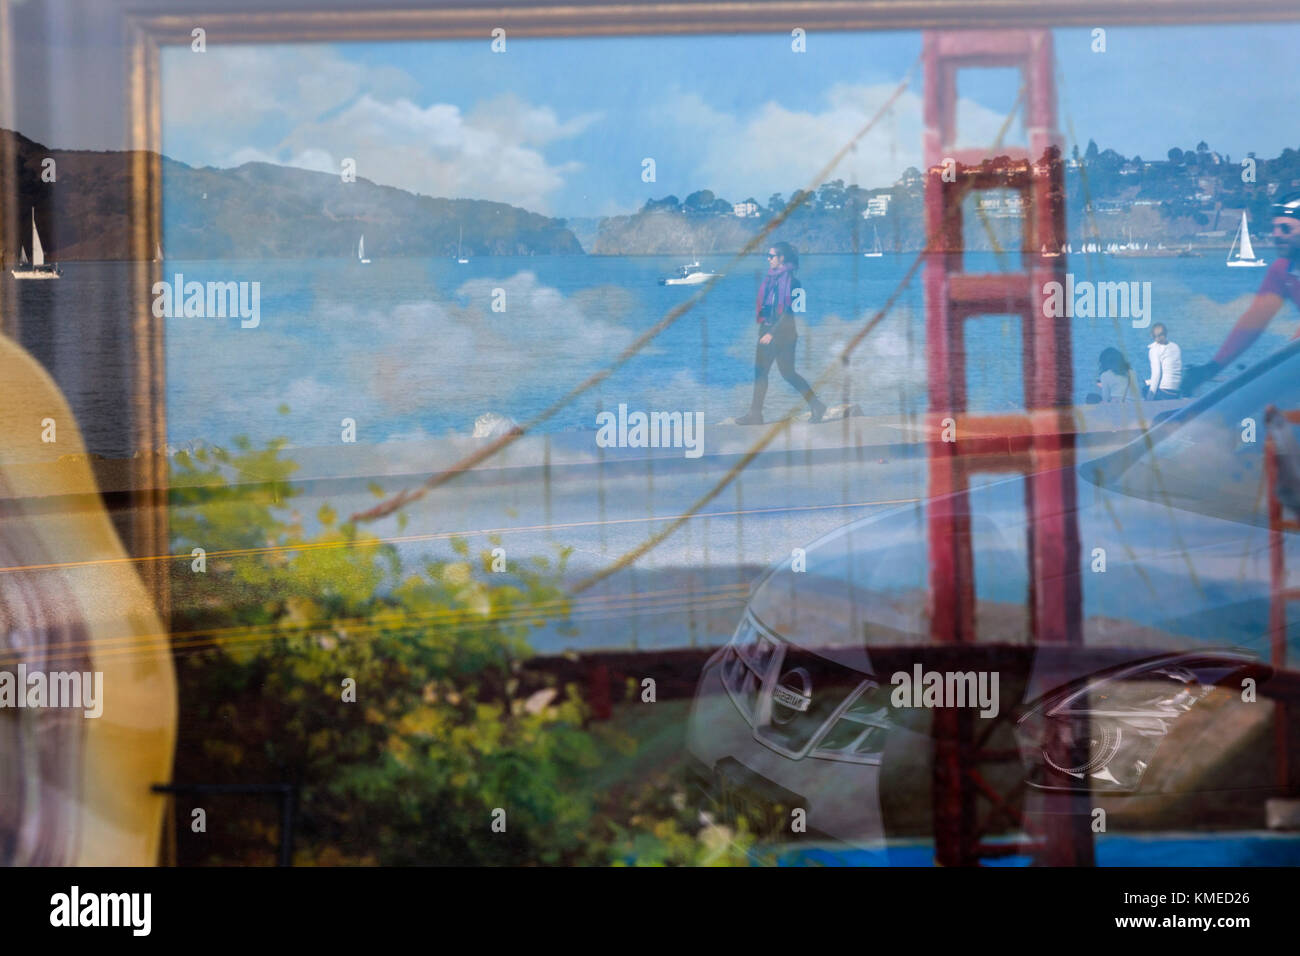 reflection of Golden Gate Bridge in window,Sausalito,California,USA - Stock Image